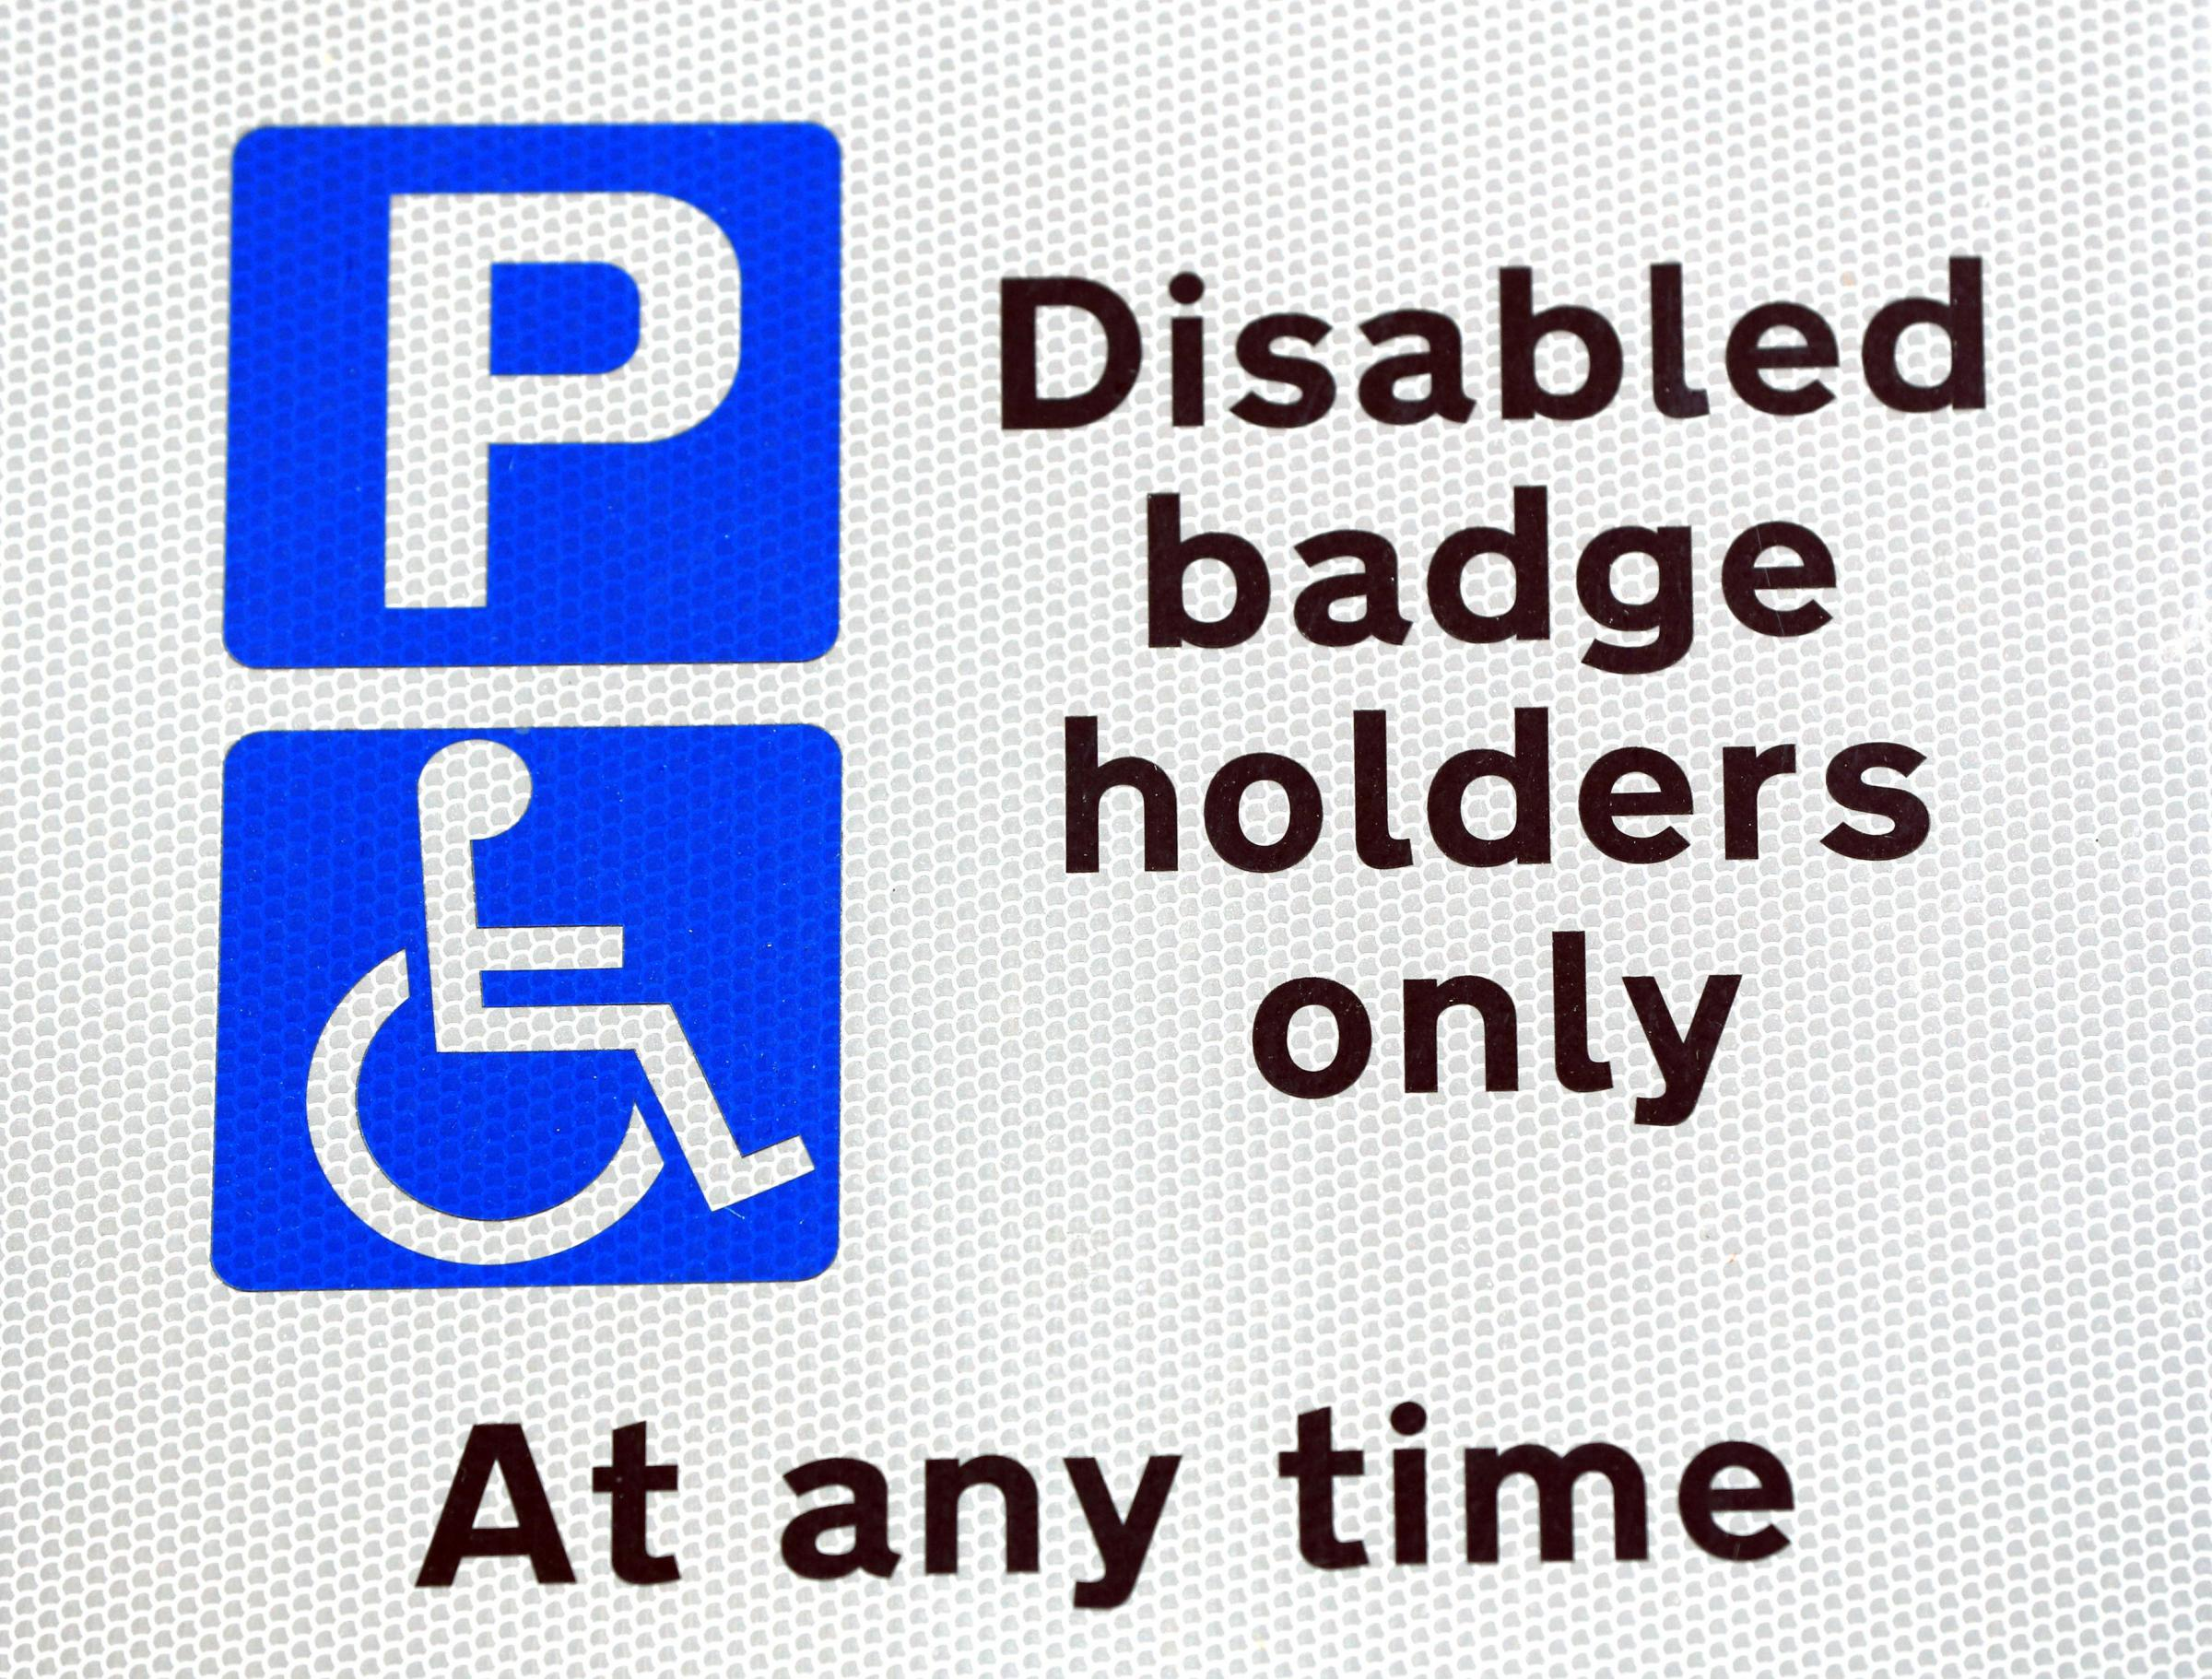 People with hidden disabilities can now apply for blue badge parking permits